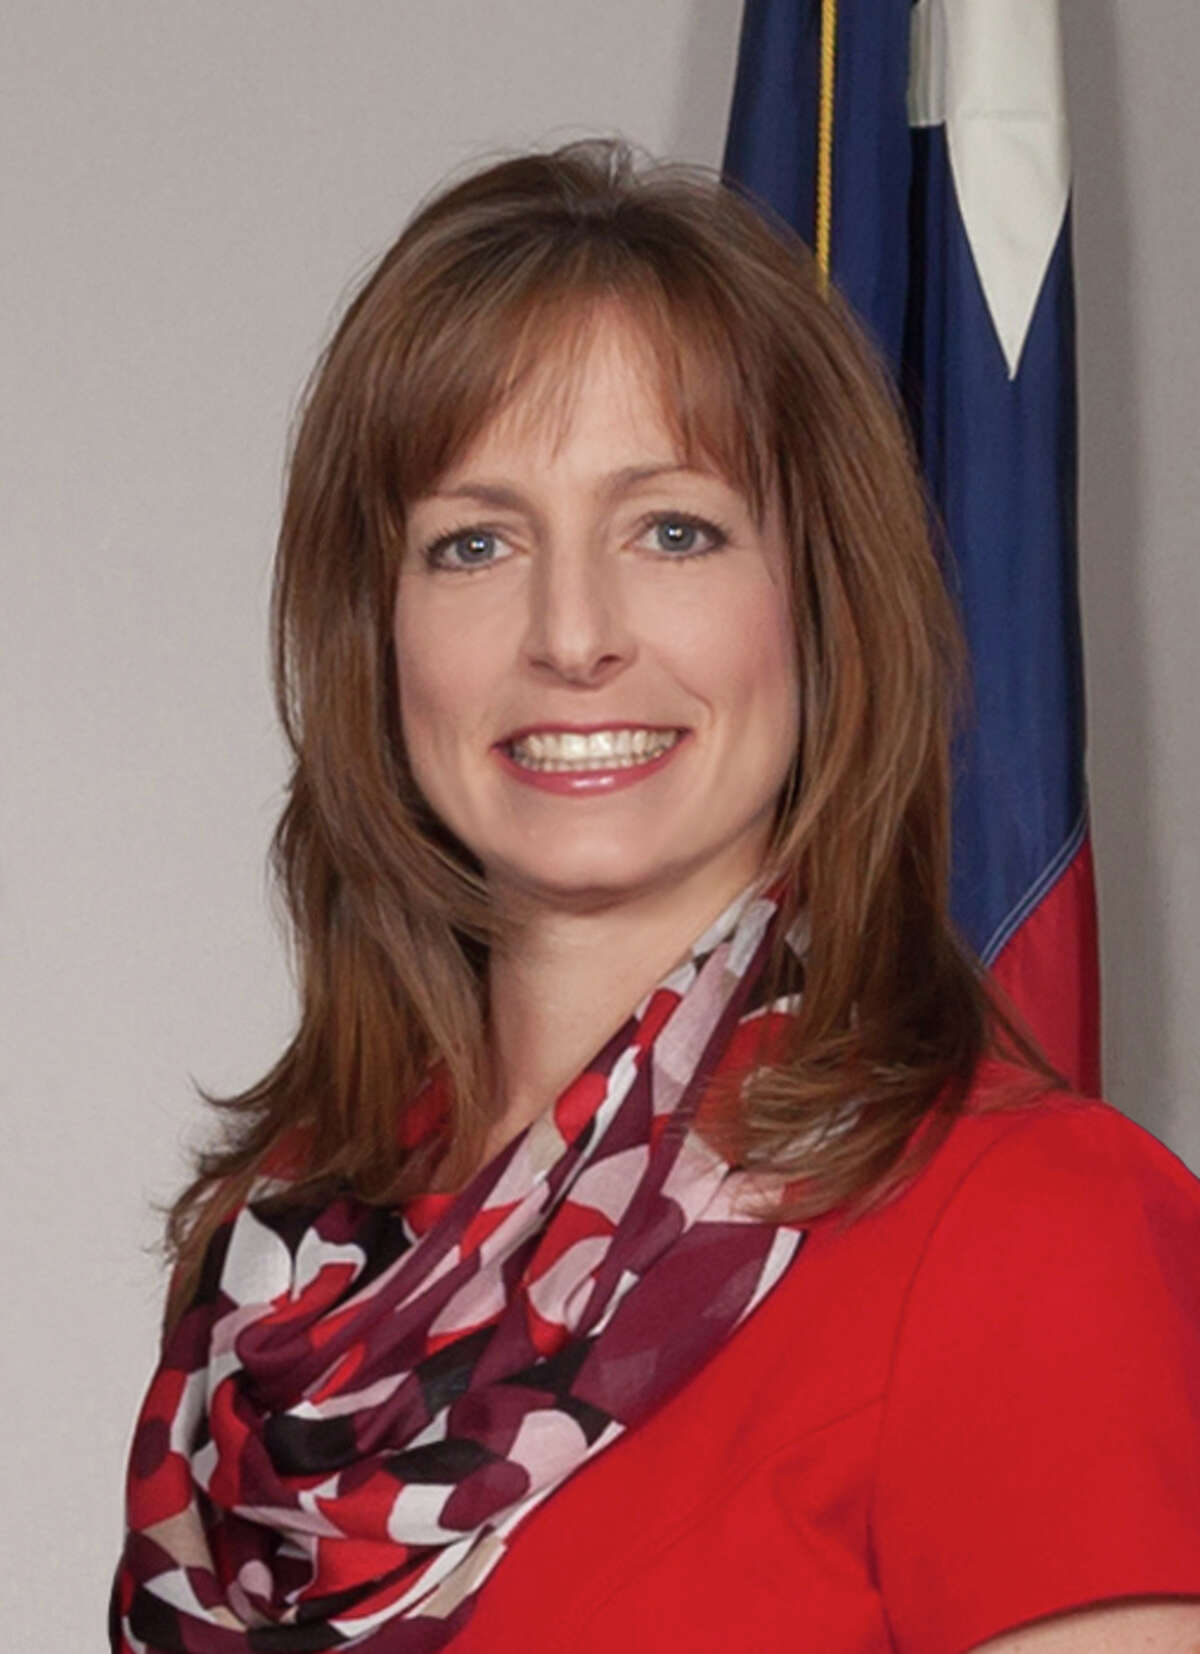 The Texas Association of School Boards (TASB) has selected Humble ISD Trustee Angela Conrad to the Leadership TASB Class of 2016. She joins 36 school board leaders handpicked from across the state based upon a written application to the yearlong leadership program. There are 1,027 independent school districts in Texas.